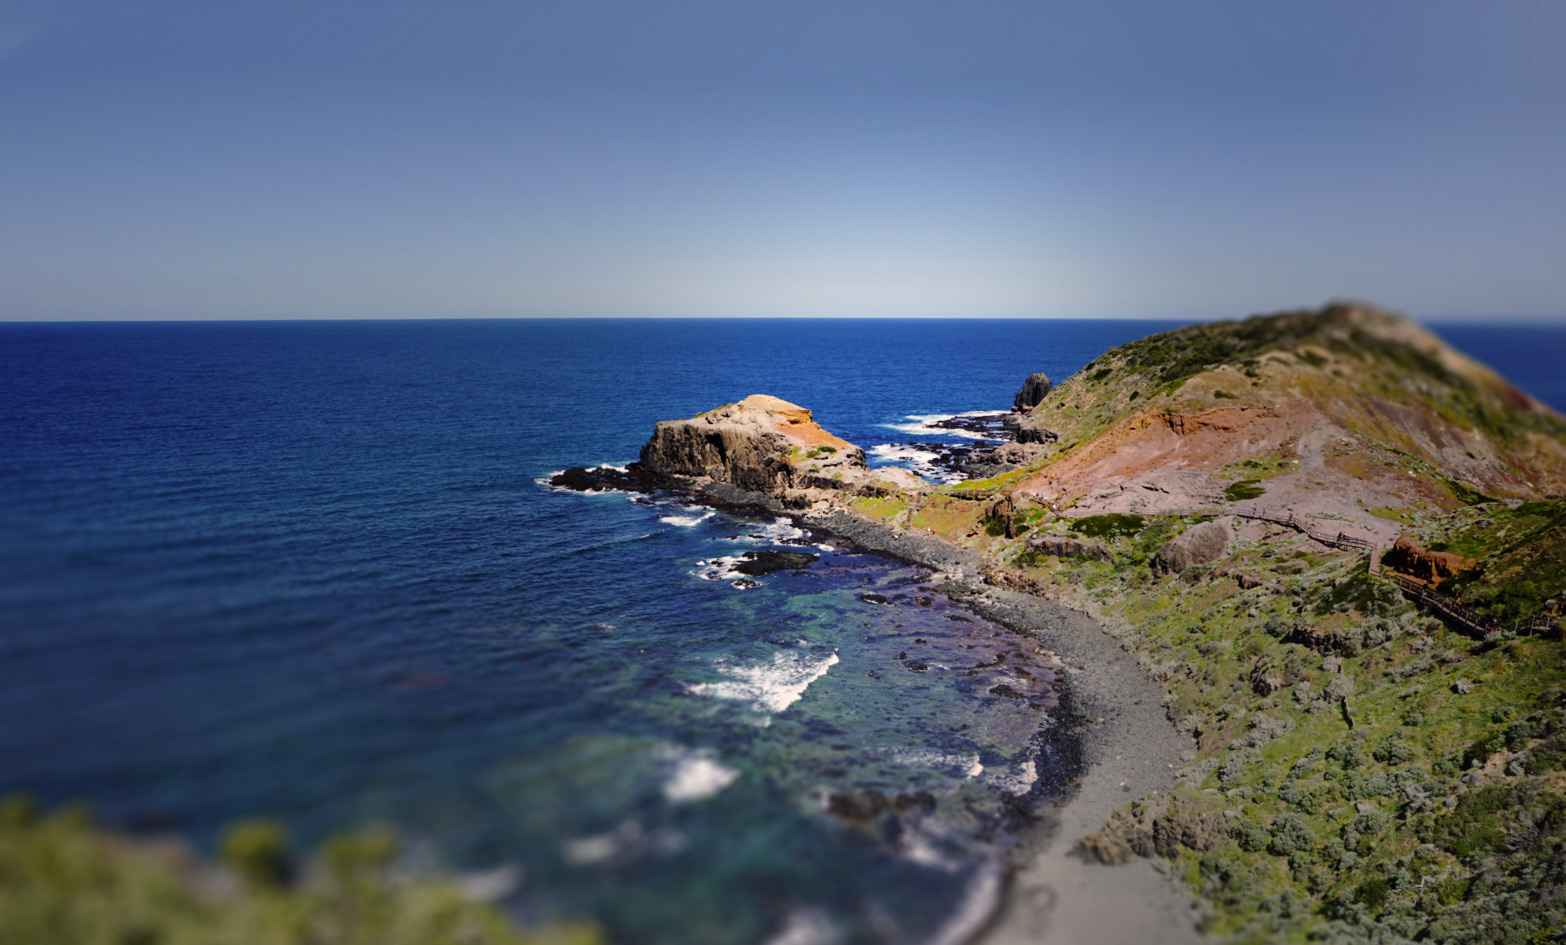 Cape Schanck coastline